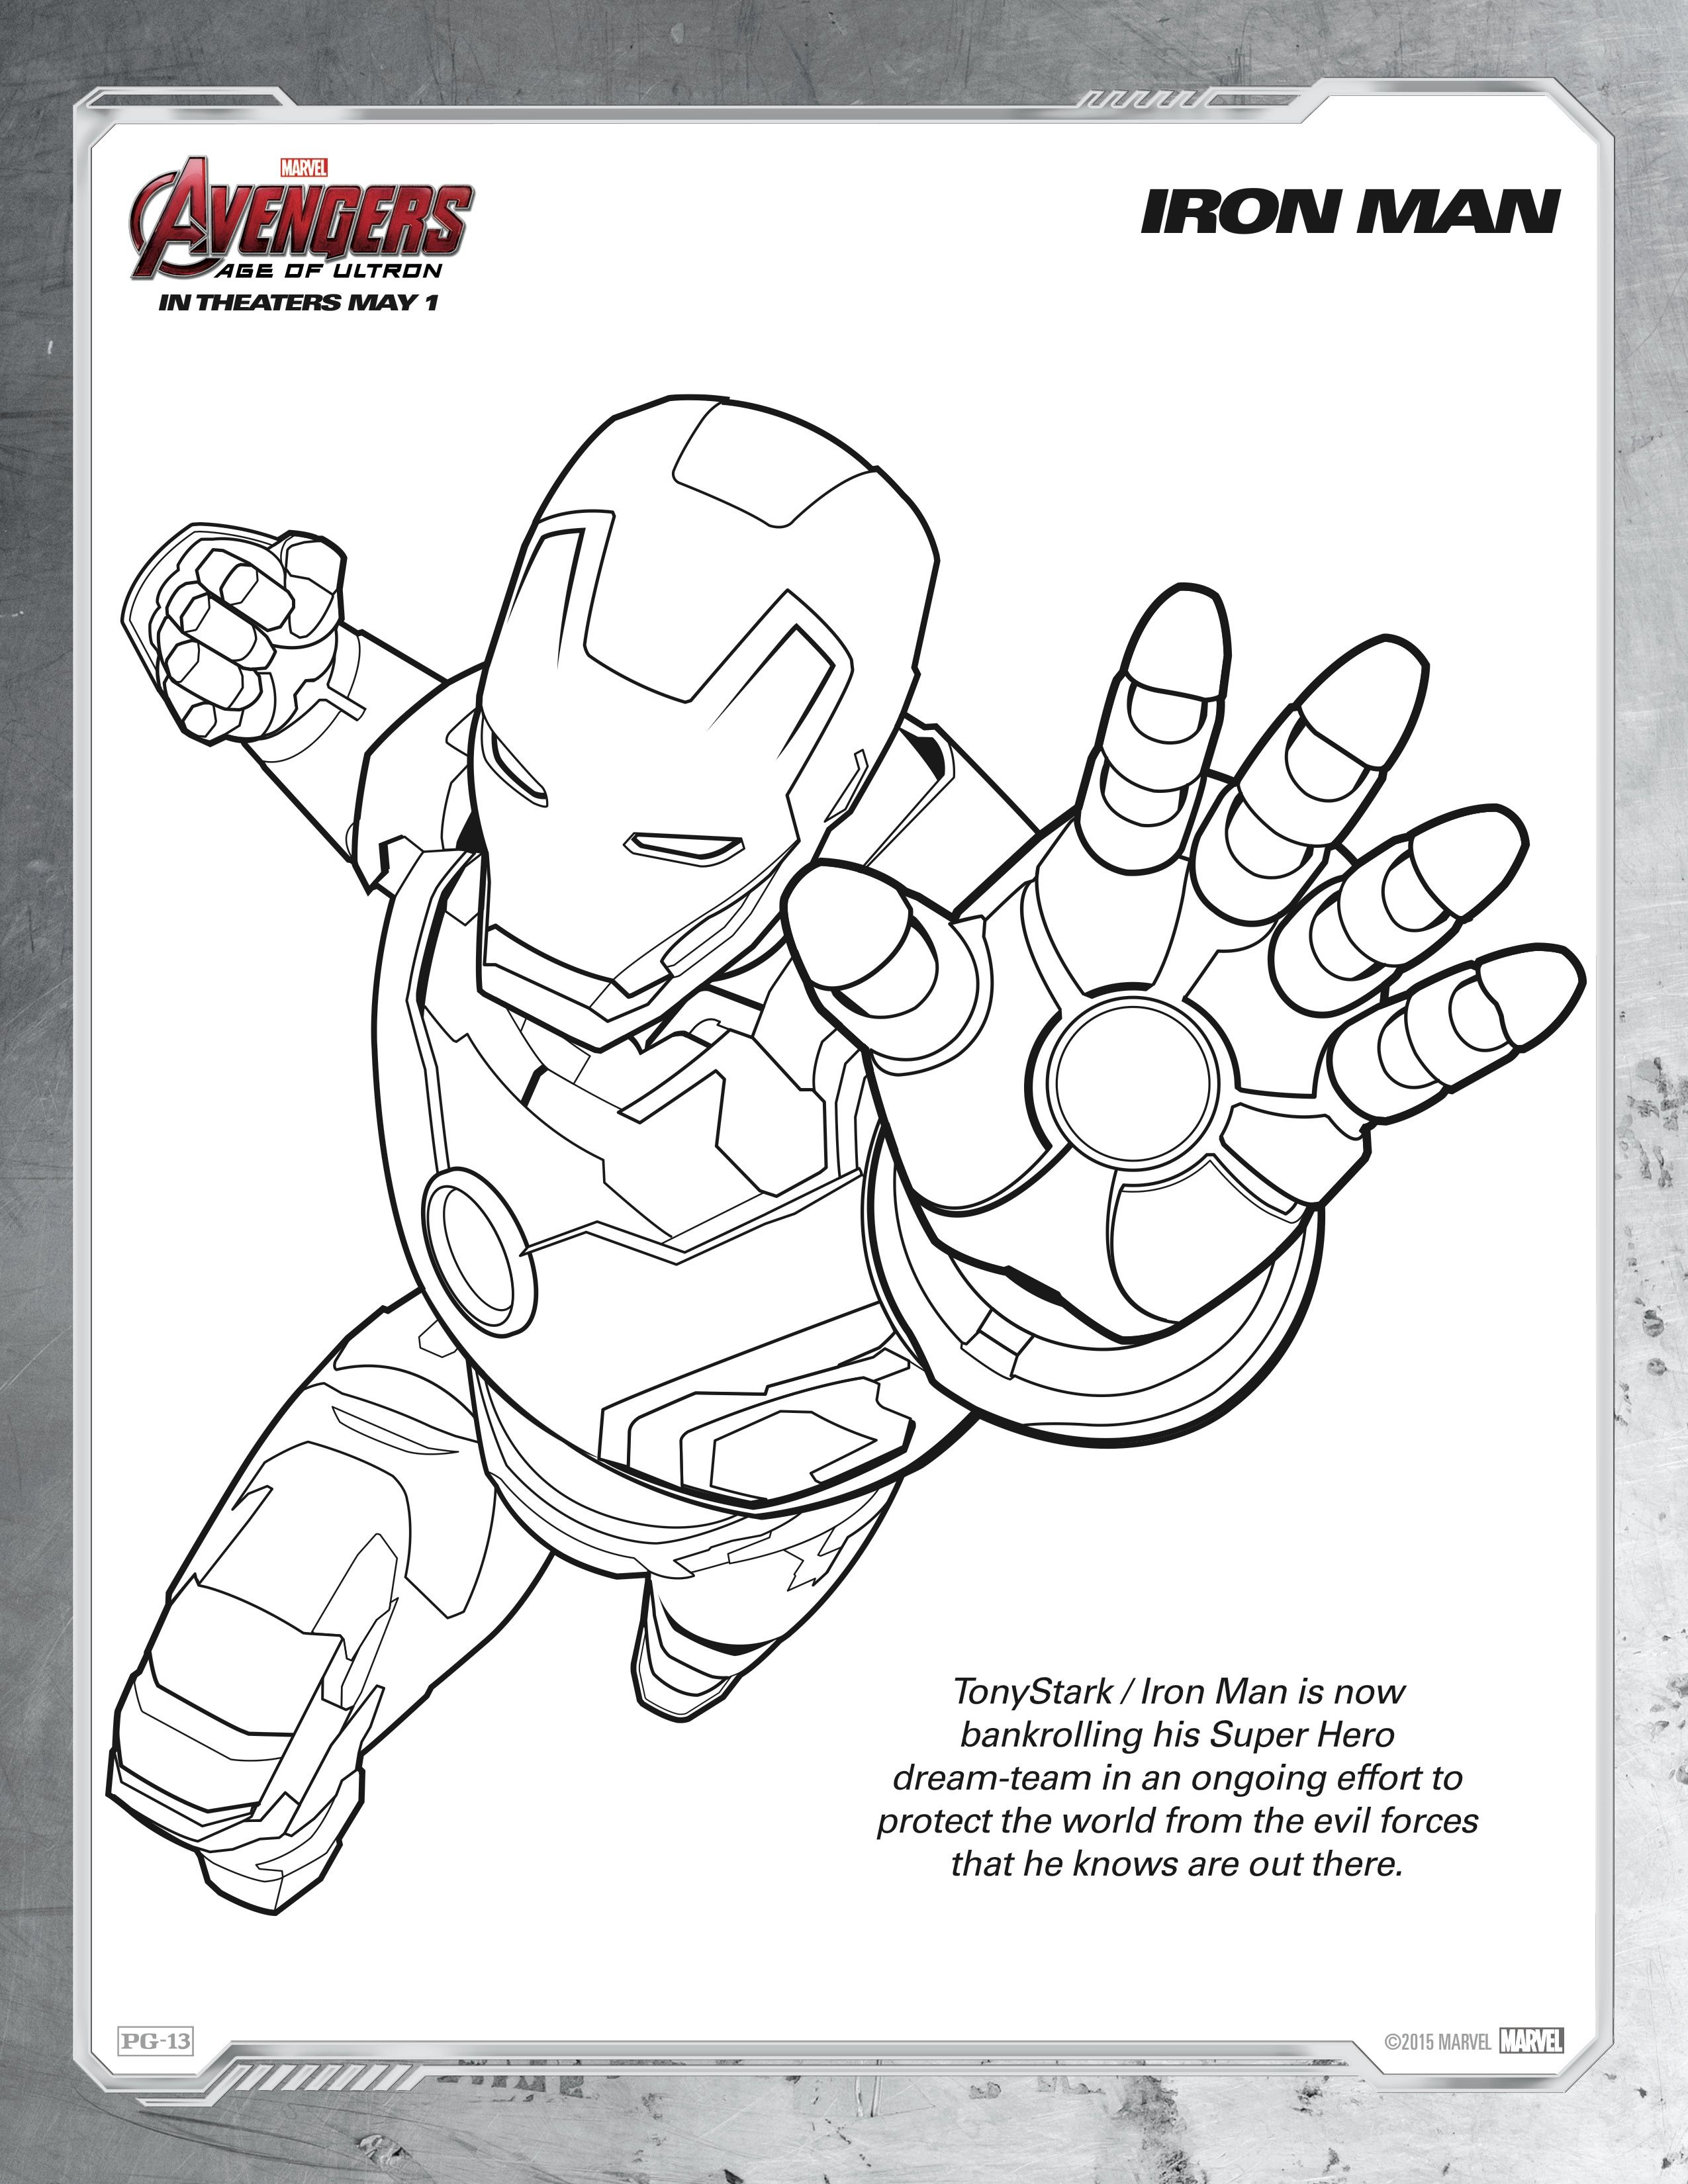 Quicksilver coloring pages - 4cb4ge7ei Ultron Coloring Pages Coloring Home On Lego Avengers Age Of Ultron Coloring Pages